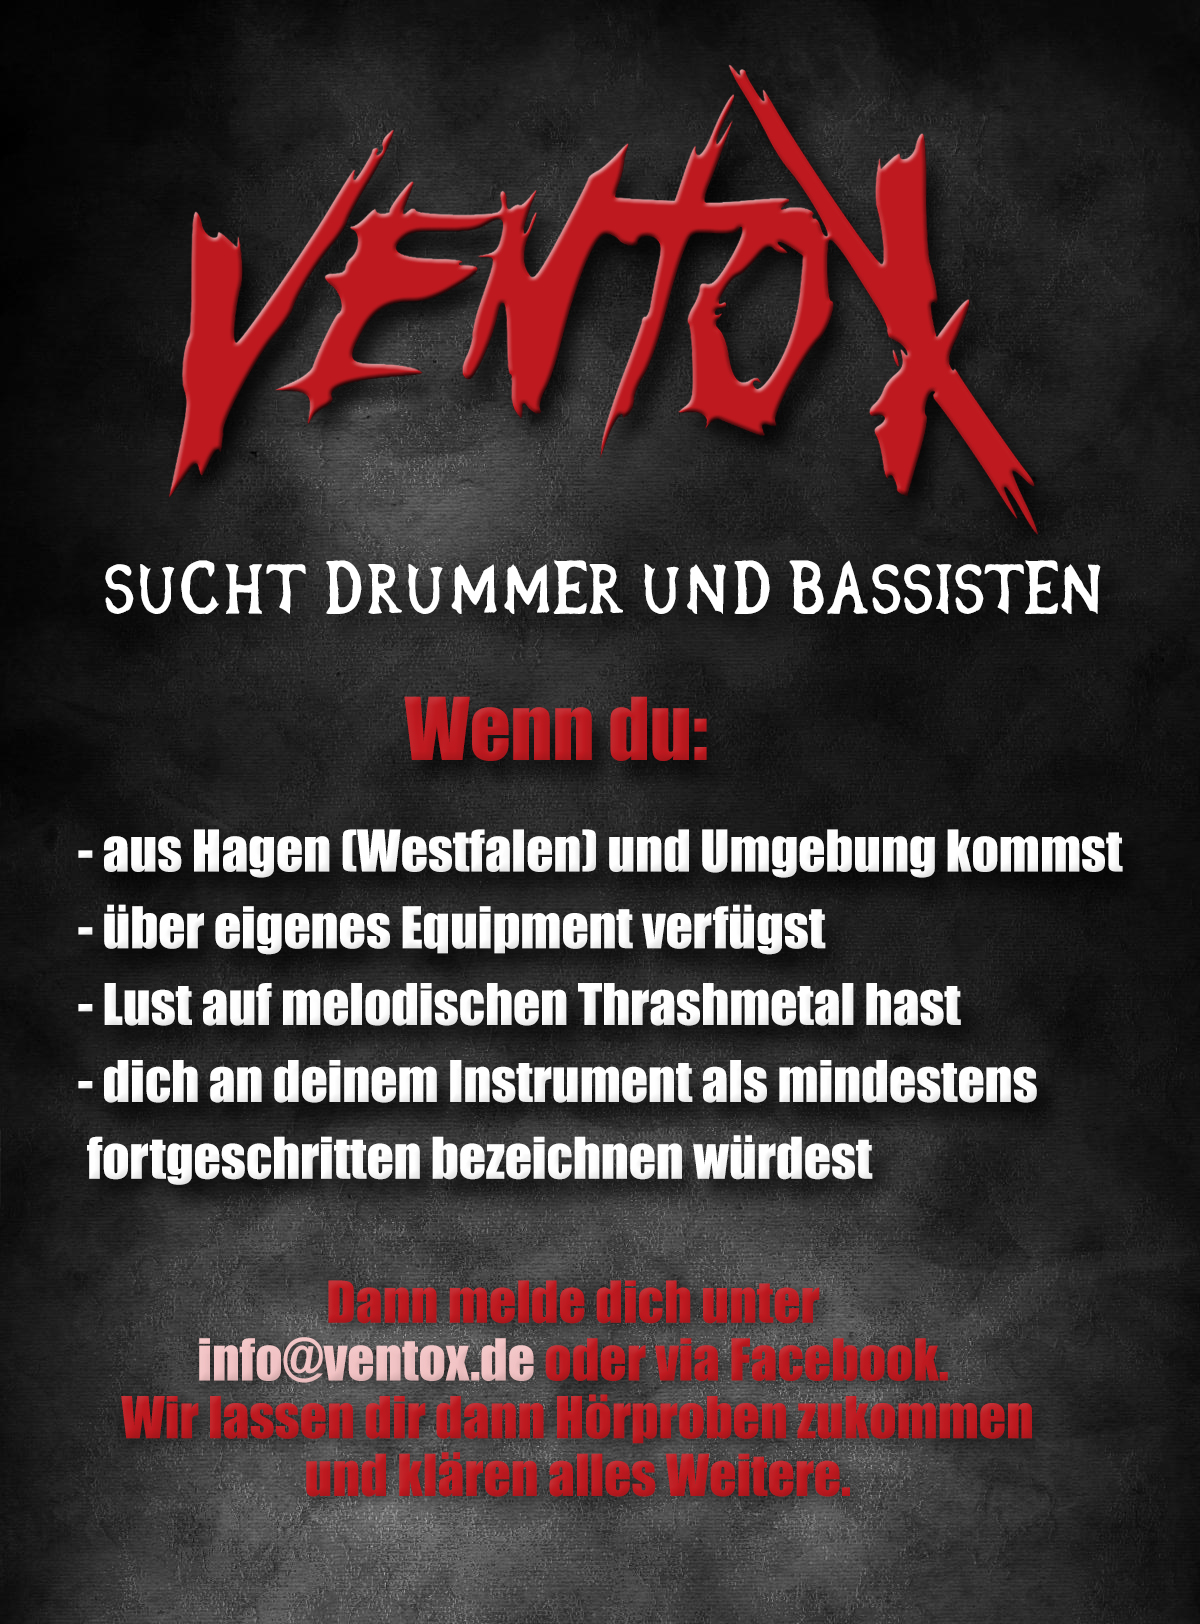 Drummer & bass player wanted!